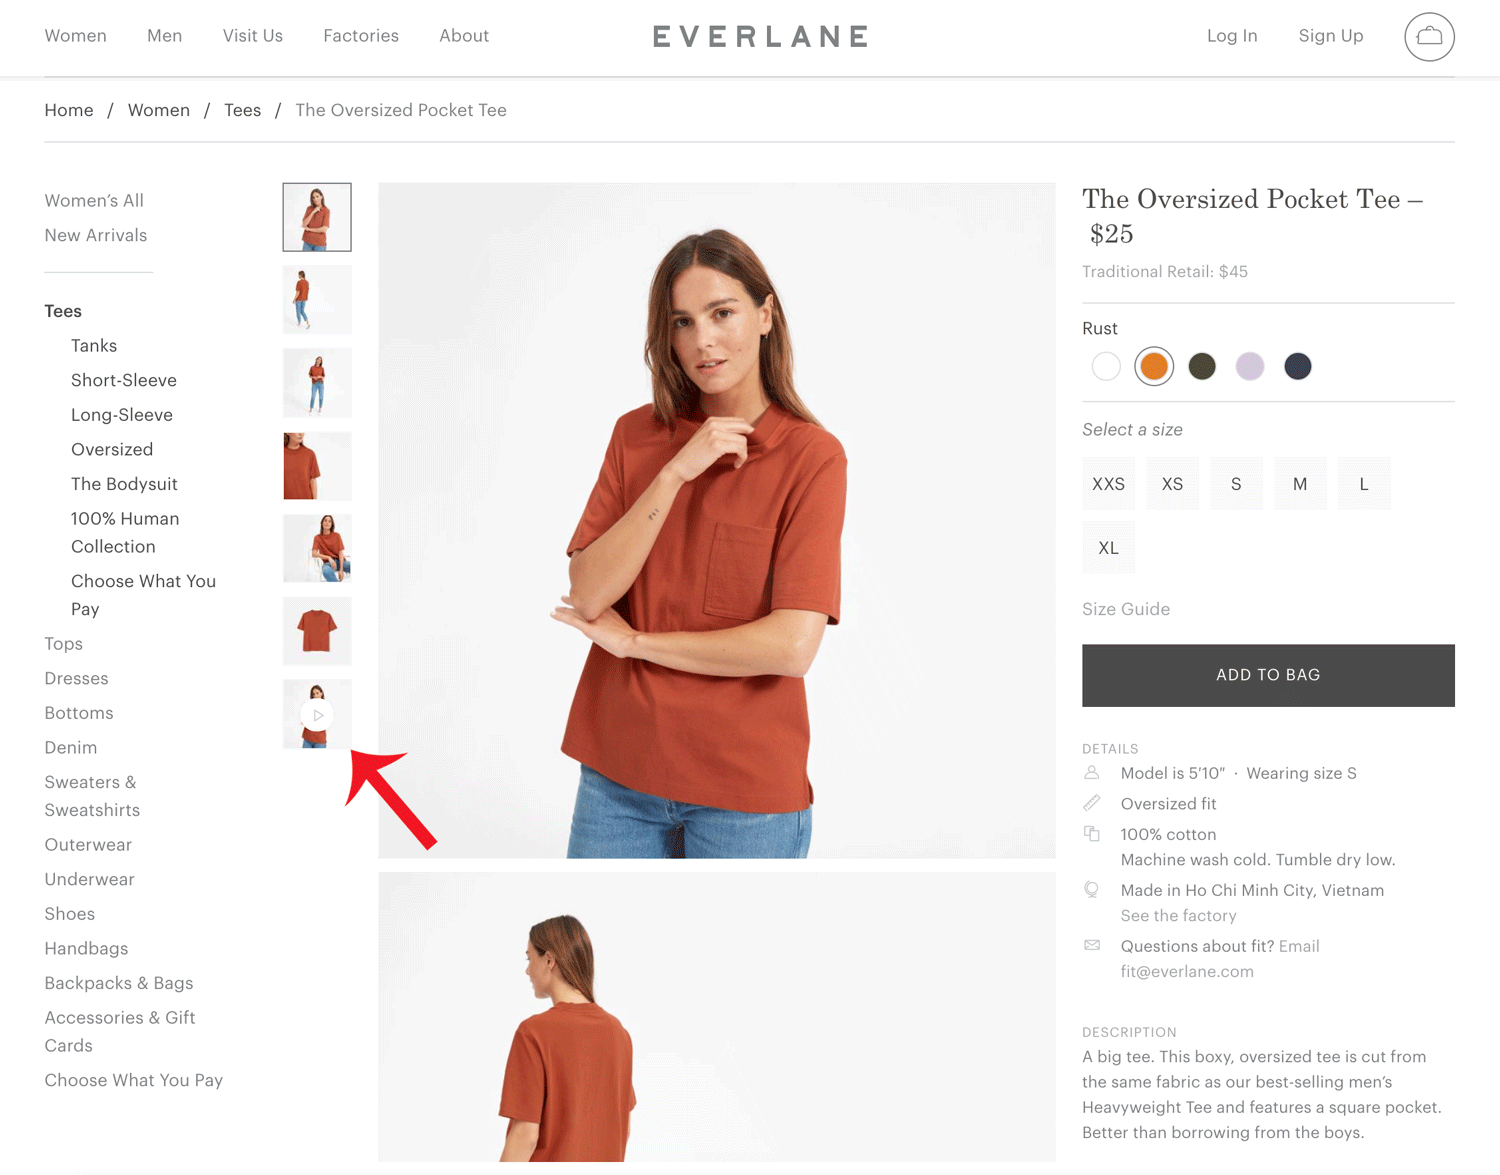 Screenshot showing a product page on Everlane